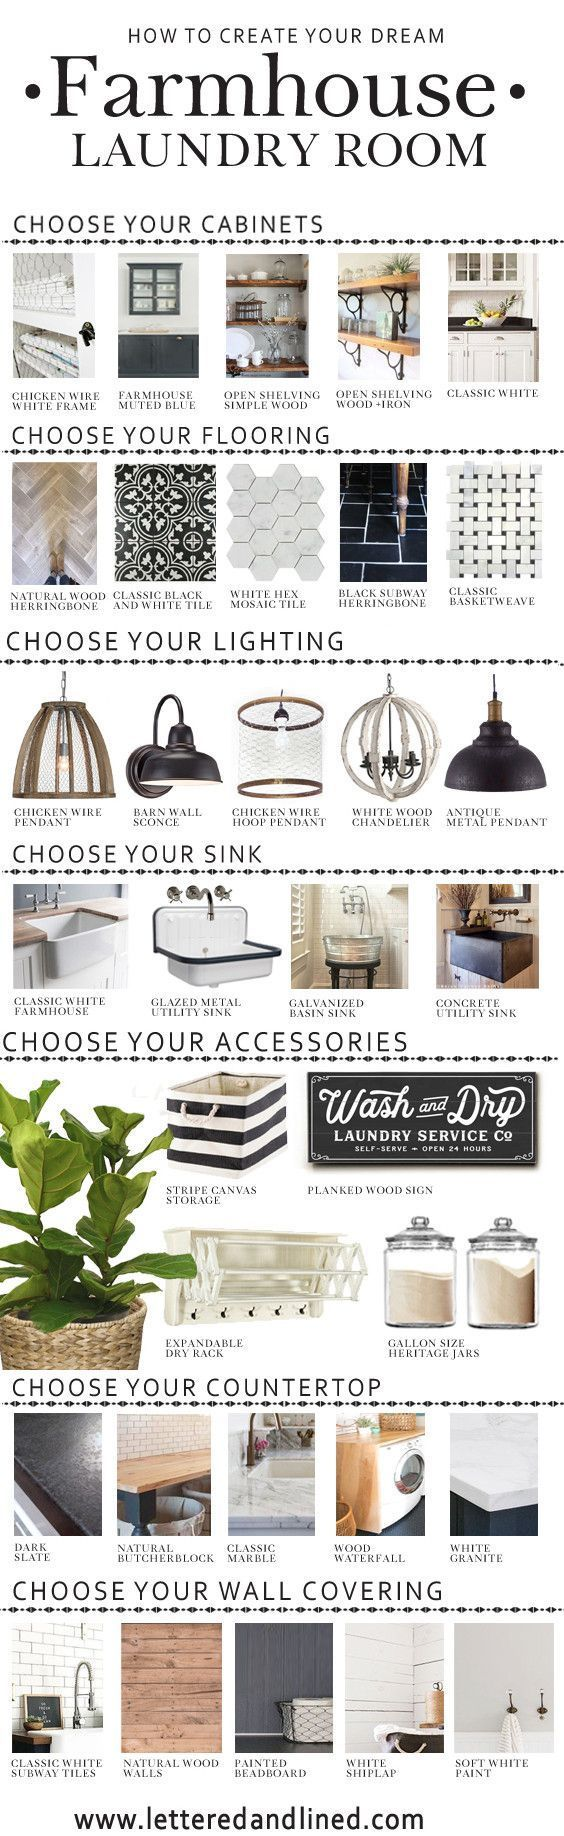 HOUSE + HOME BLOG | How To Create Your Dream Farmhouse Laundry Room – Lettered... HOUSE + HOME BLOG | How To Create Your Dream Farmhouse Laundry Room – Lettered...,